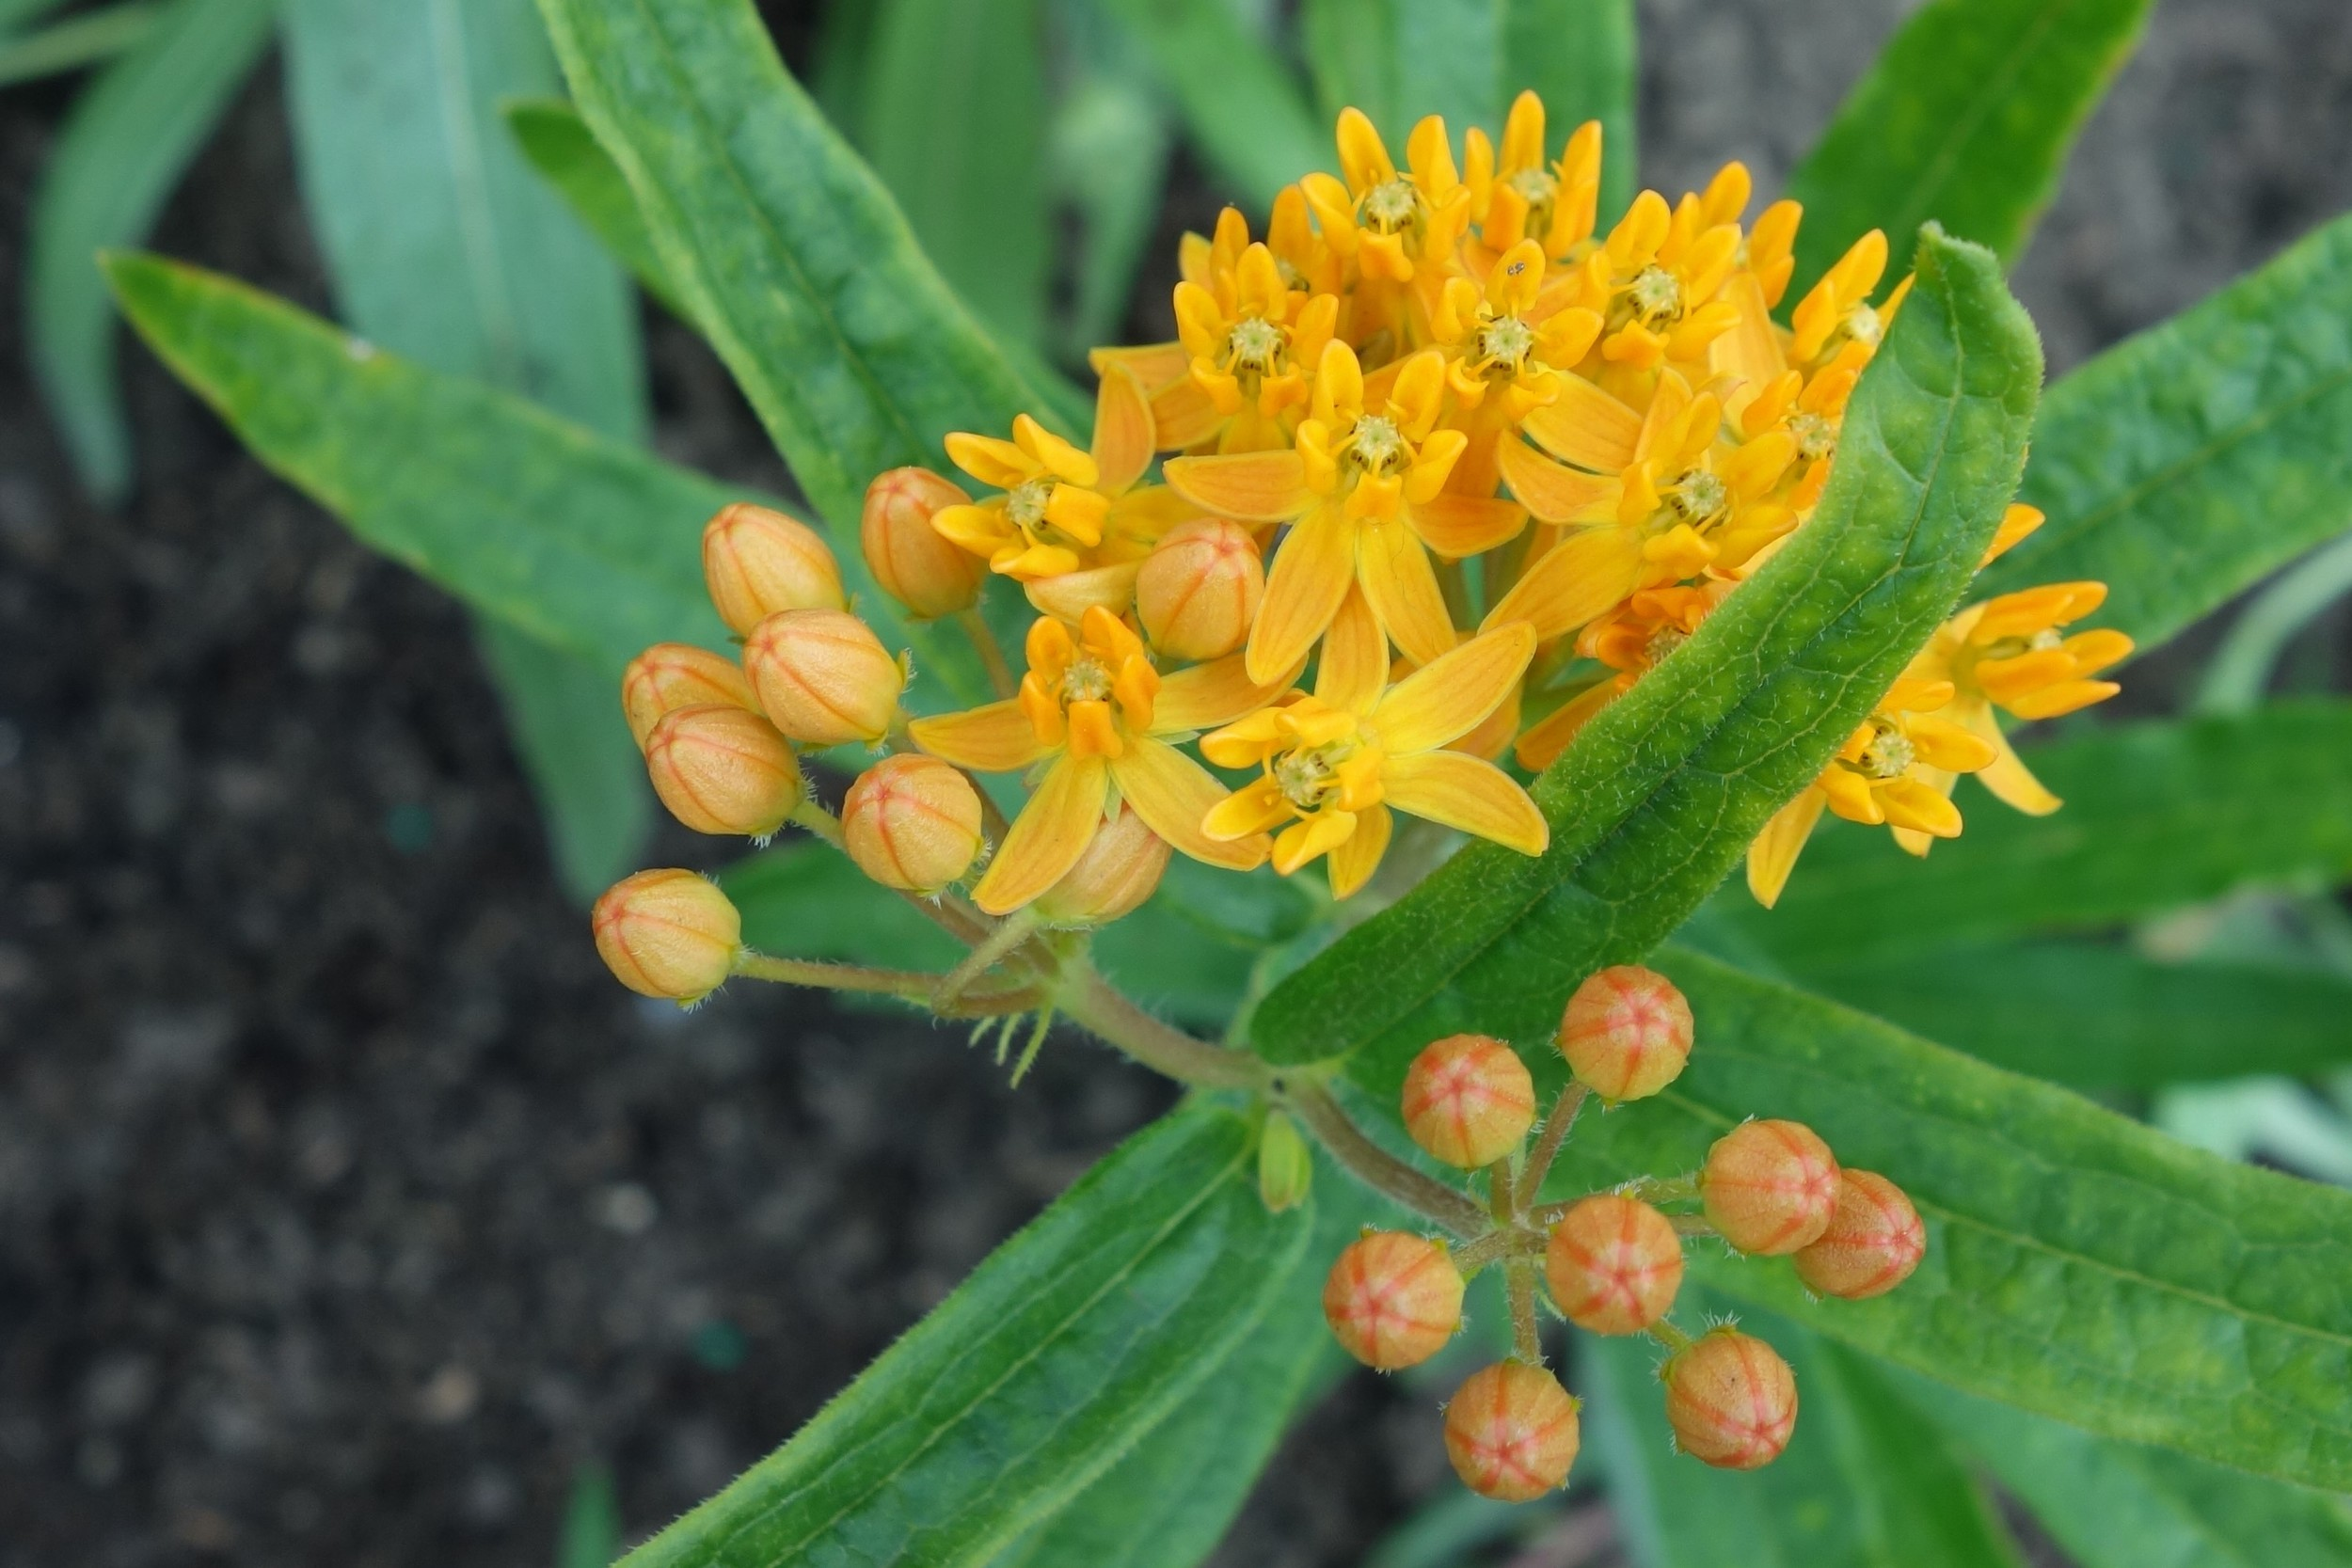 There is a huge variety of milkweed plants to choose from. Butterflyweed (Asclepias tuberosa) is a popular choice because it doesn't spread too much and it is a showstopper!